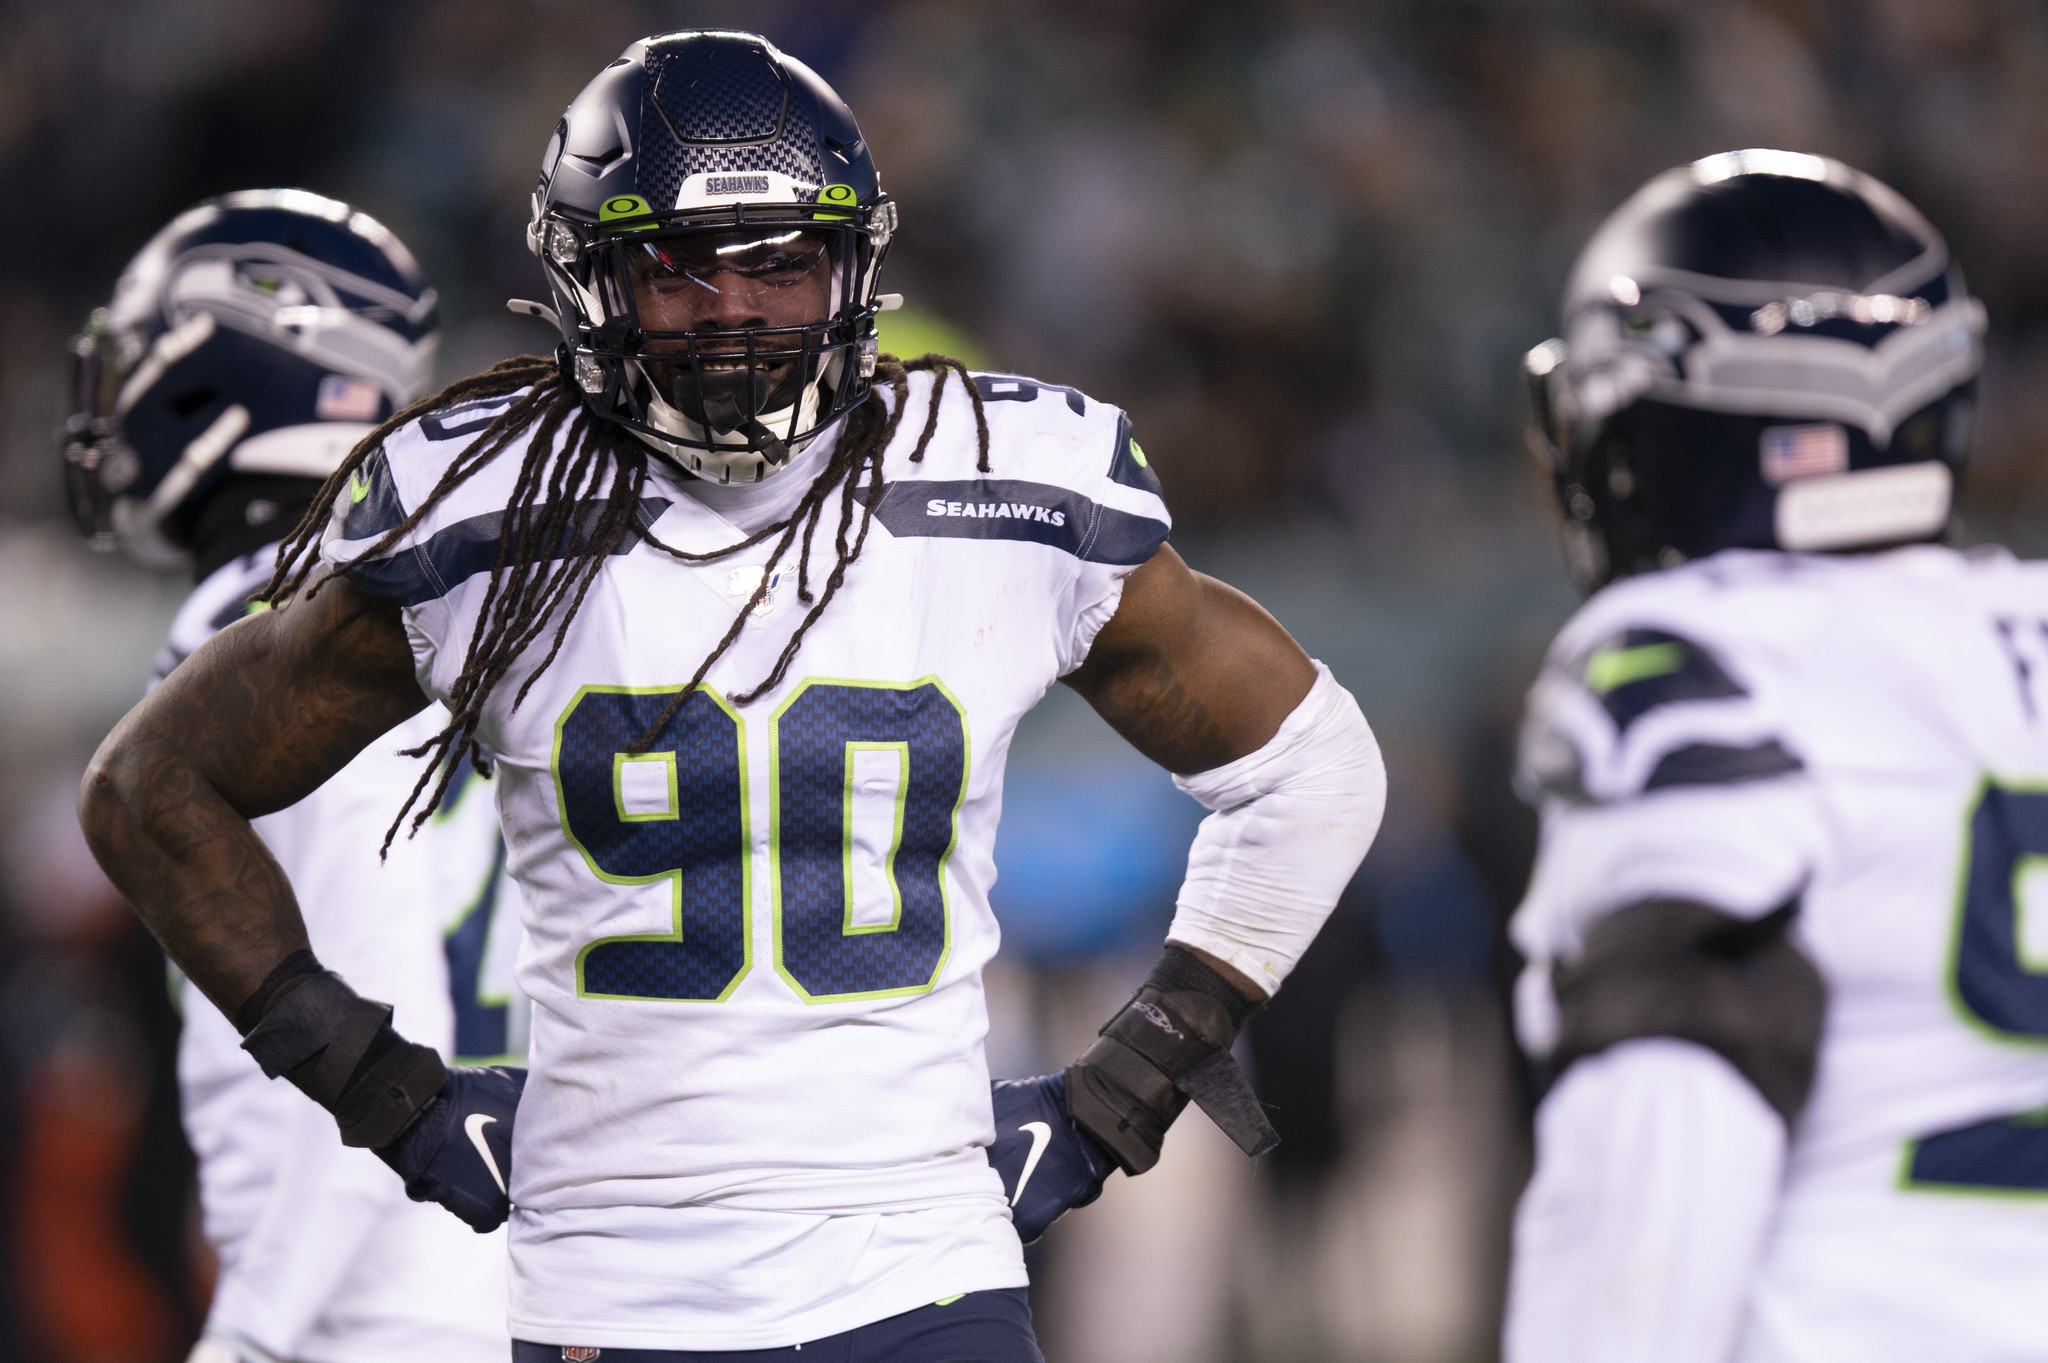 Joe Douglas says Jets looked into adding pass rusher Jadeveon Clowney